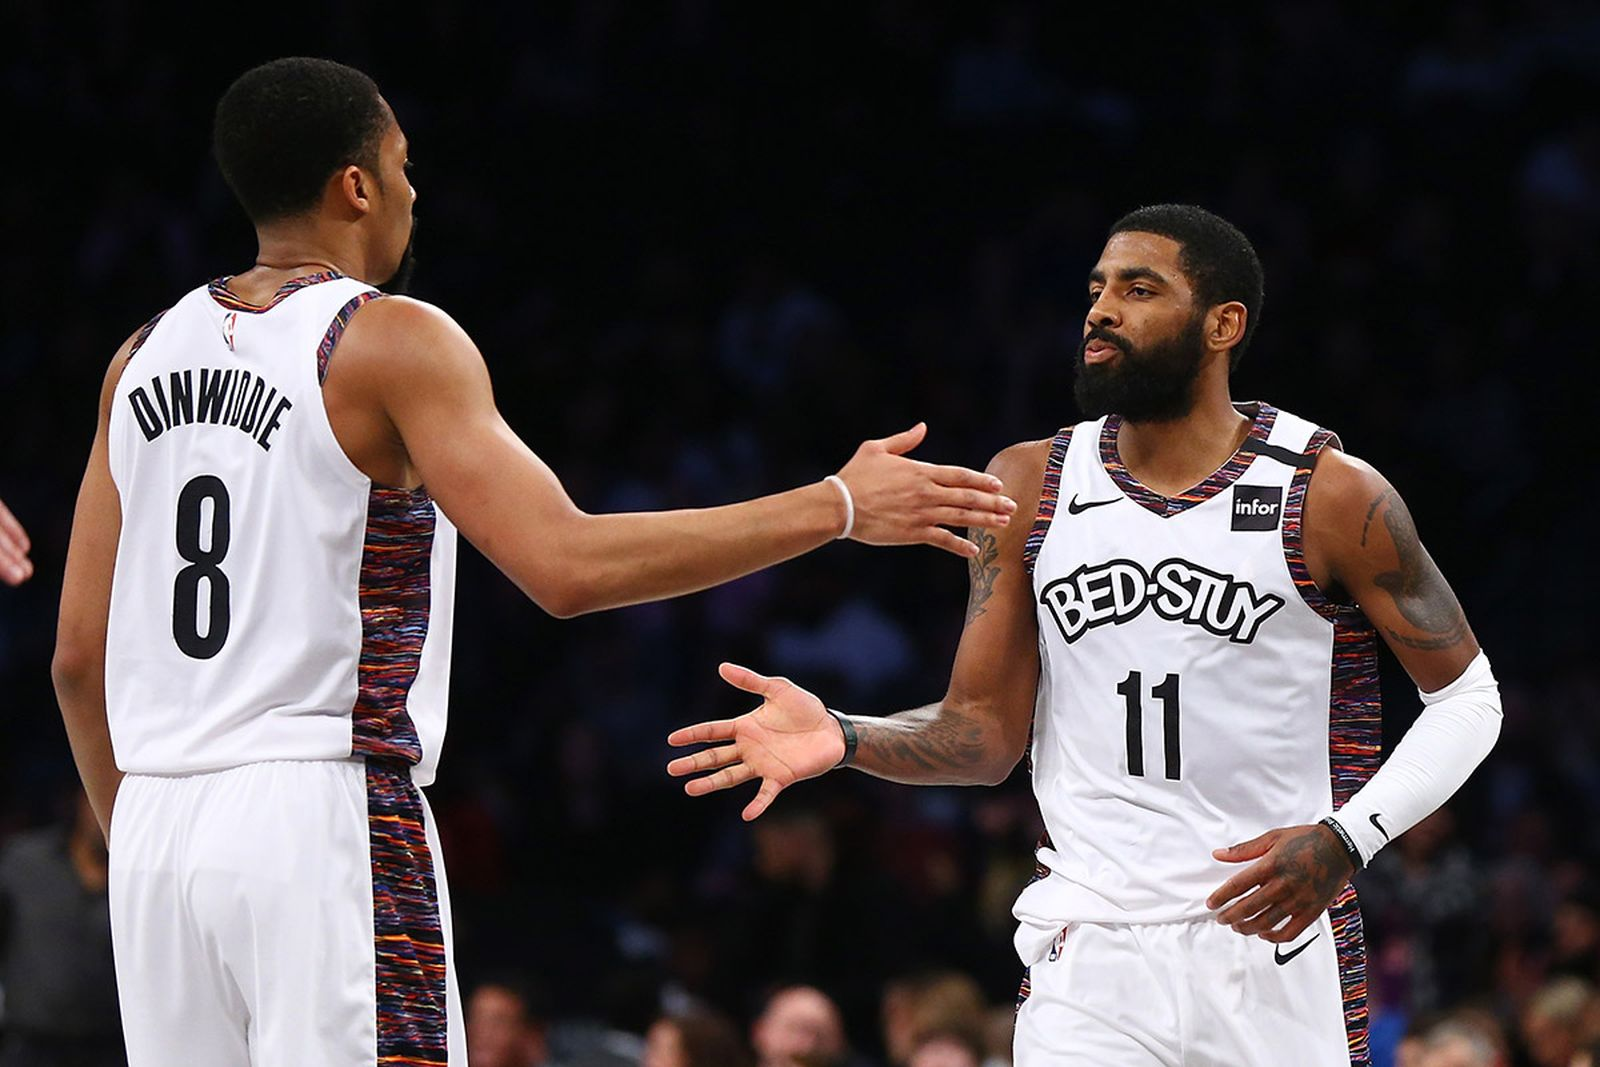 Kyrie Irving #11 of the Brooklyn Nets celebrates with Spencer Dinwiddie #8